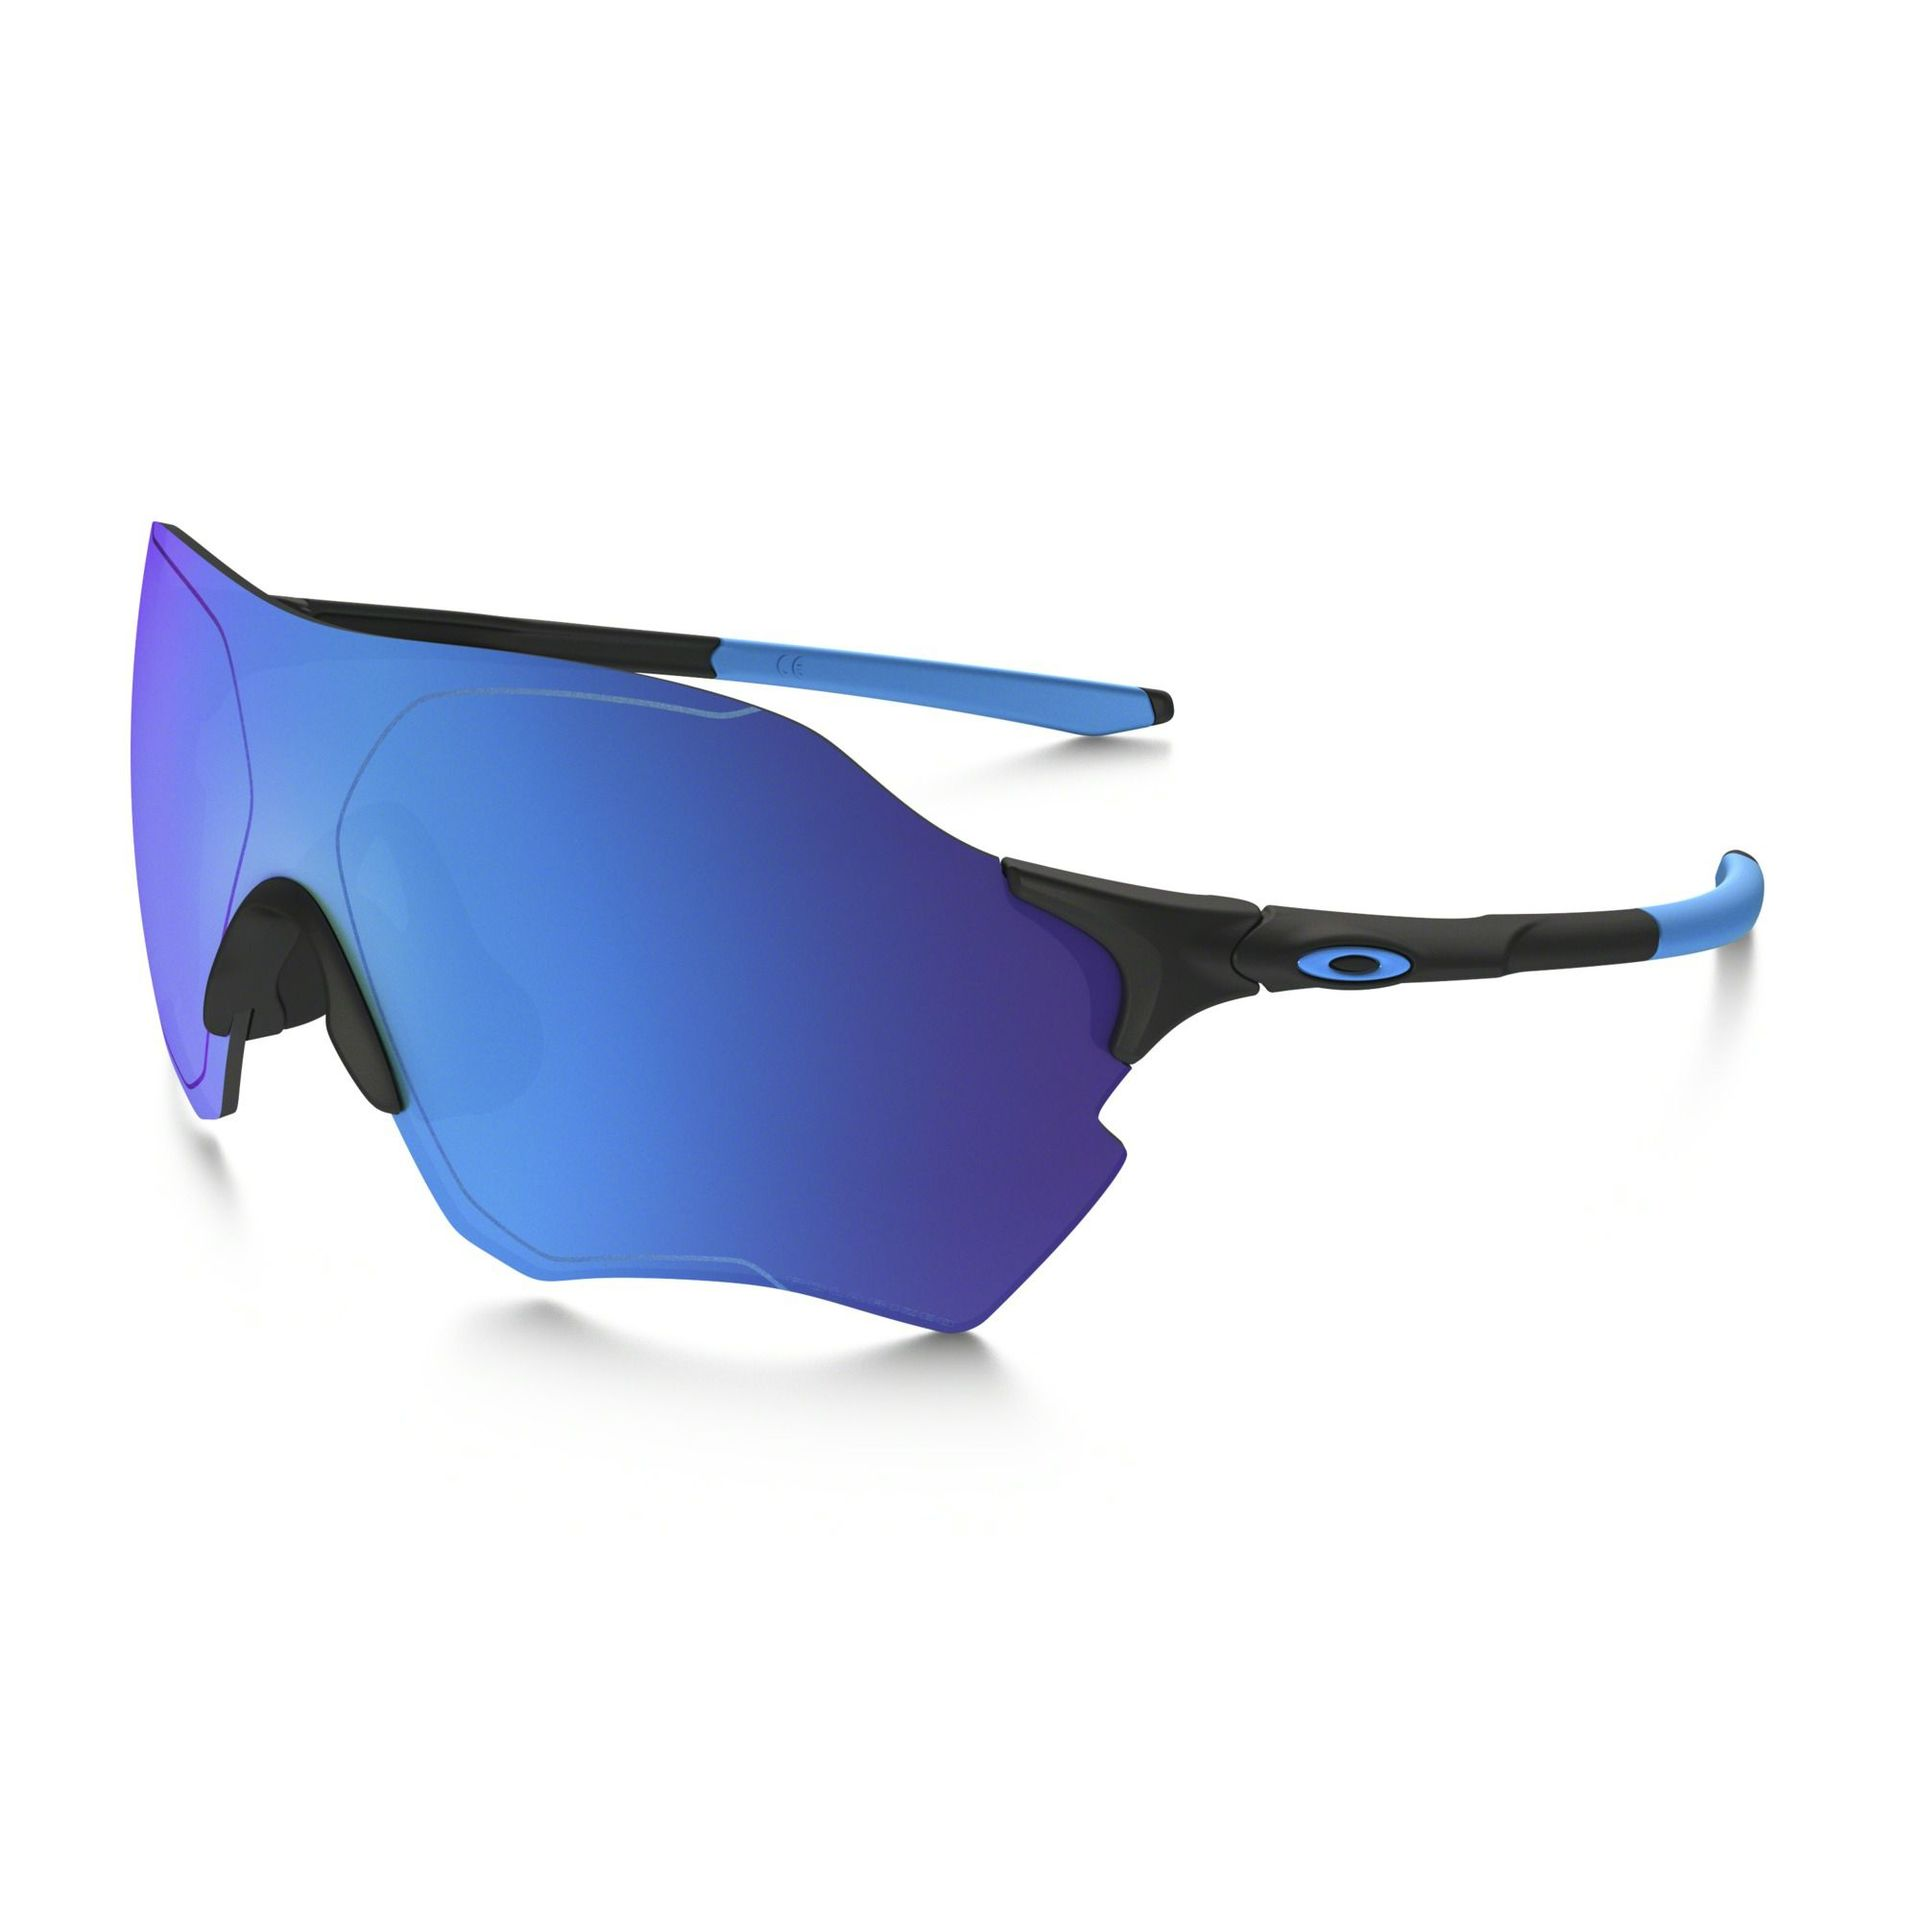 OKULARY OAKLEY EVZERO RANGE POLARIZED SAPPHIRE IRIDIUM POLARIZED